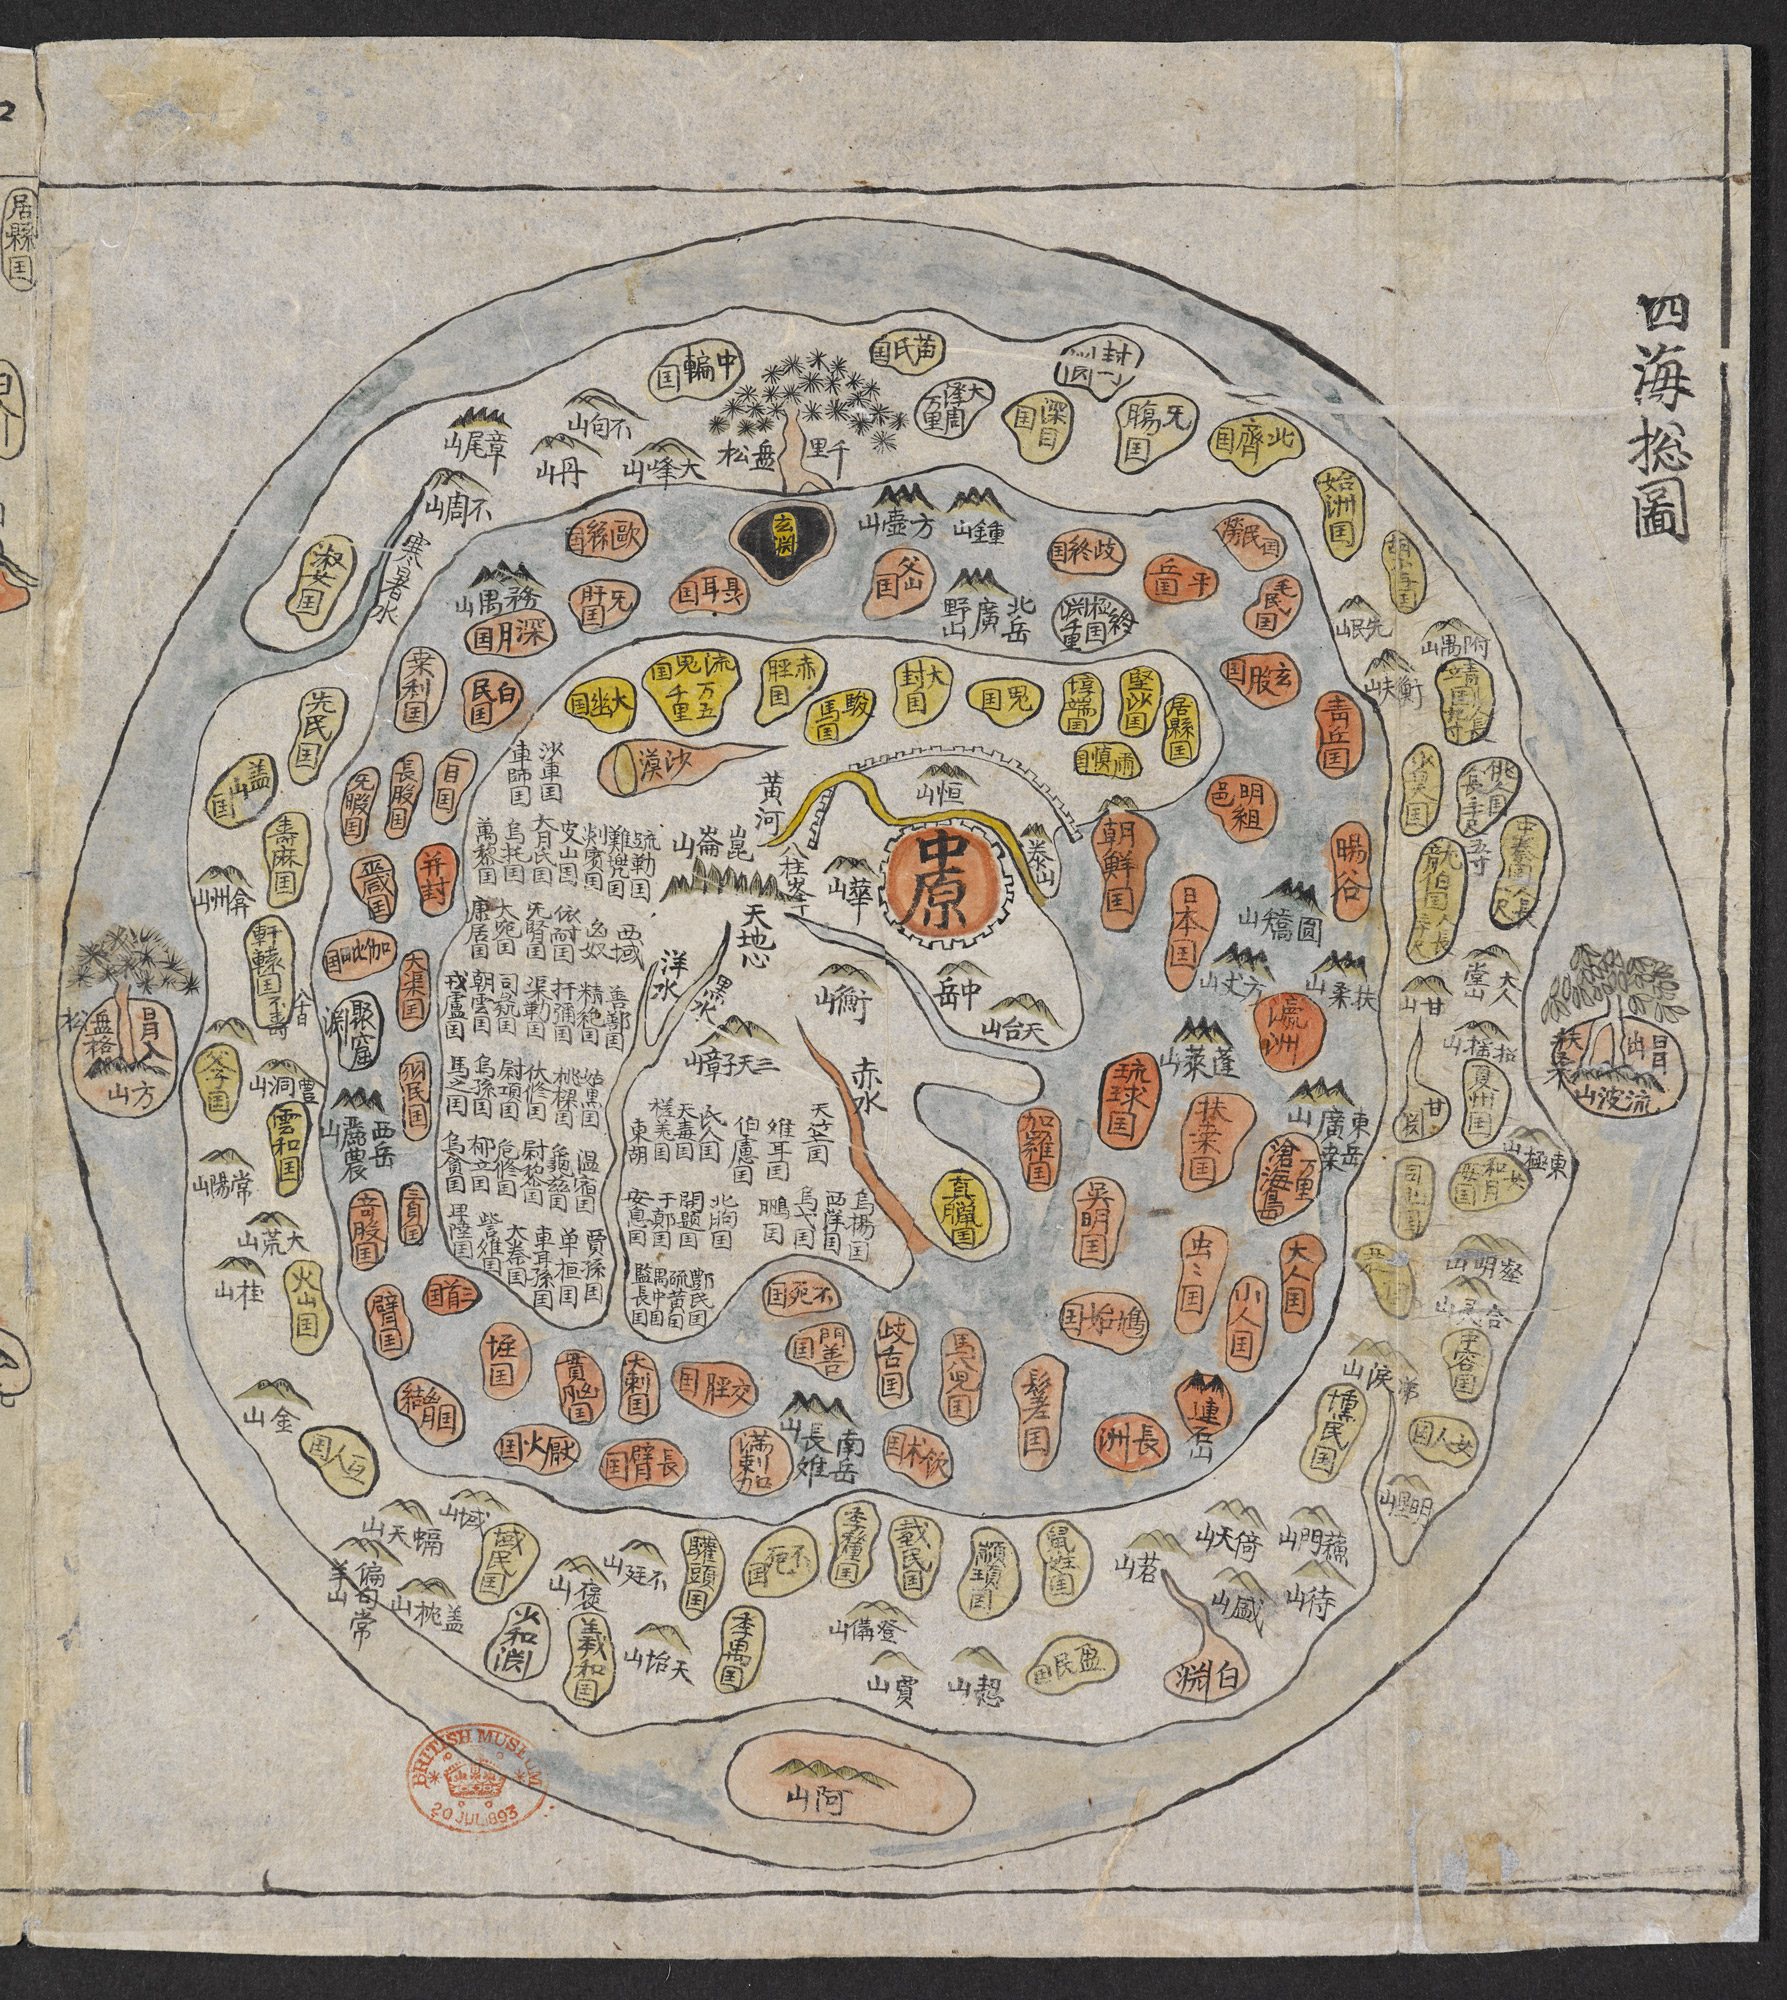 'Cheonhado' world map. Seoul, c. 1800. Maps C.27.f.14.